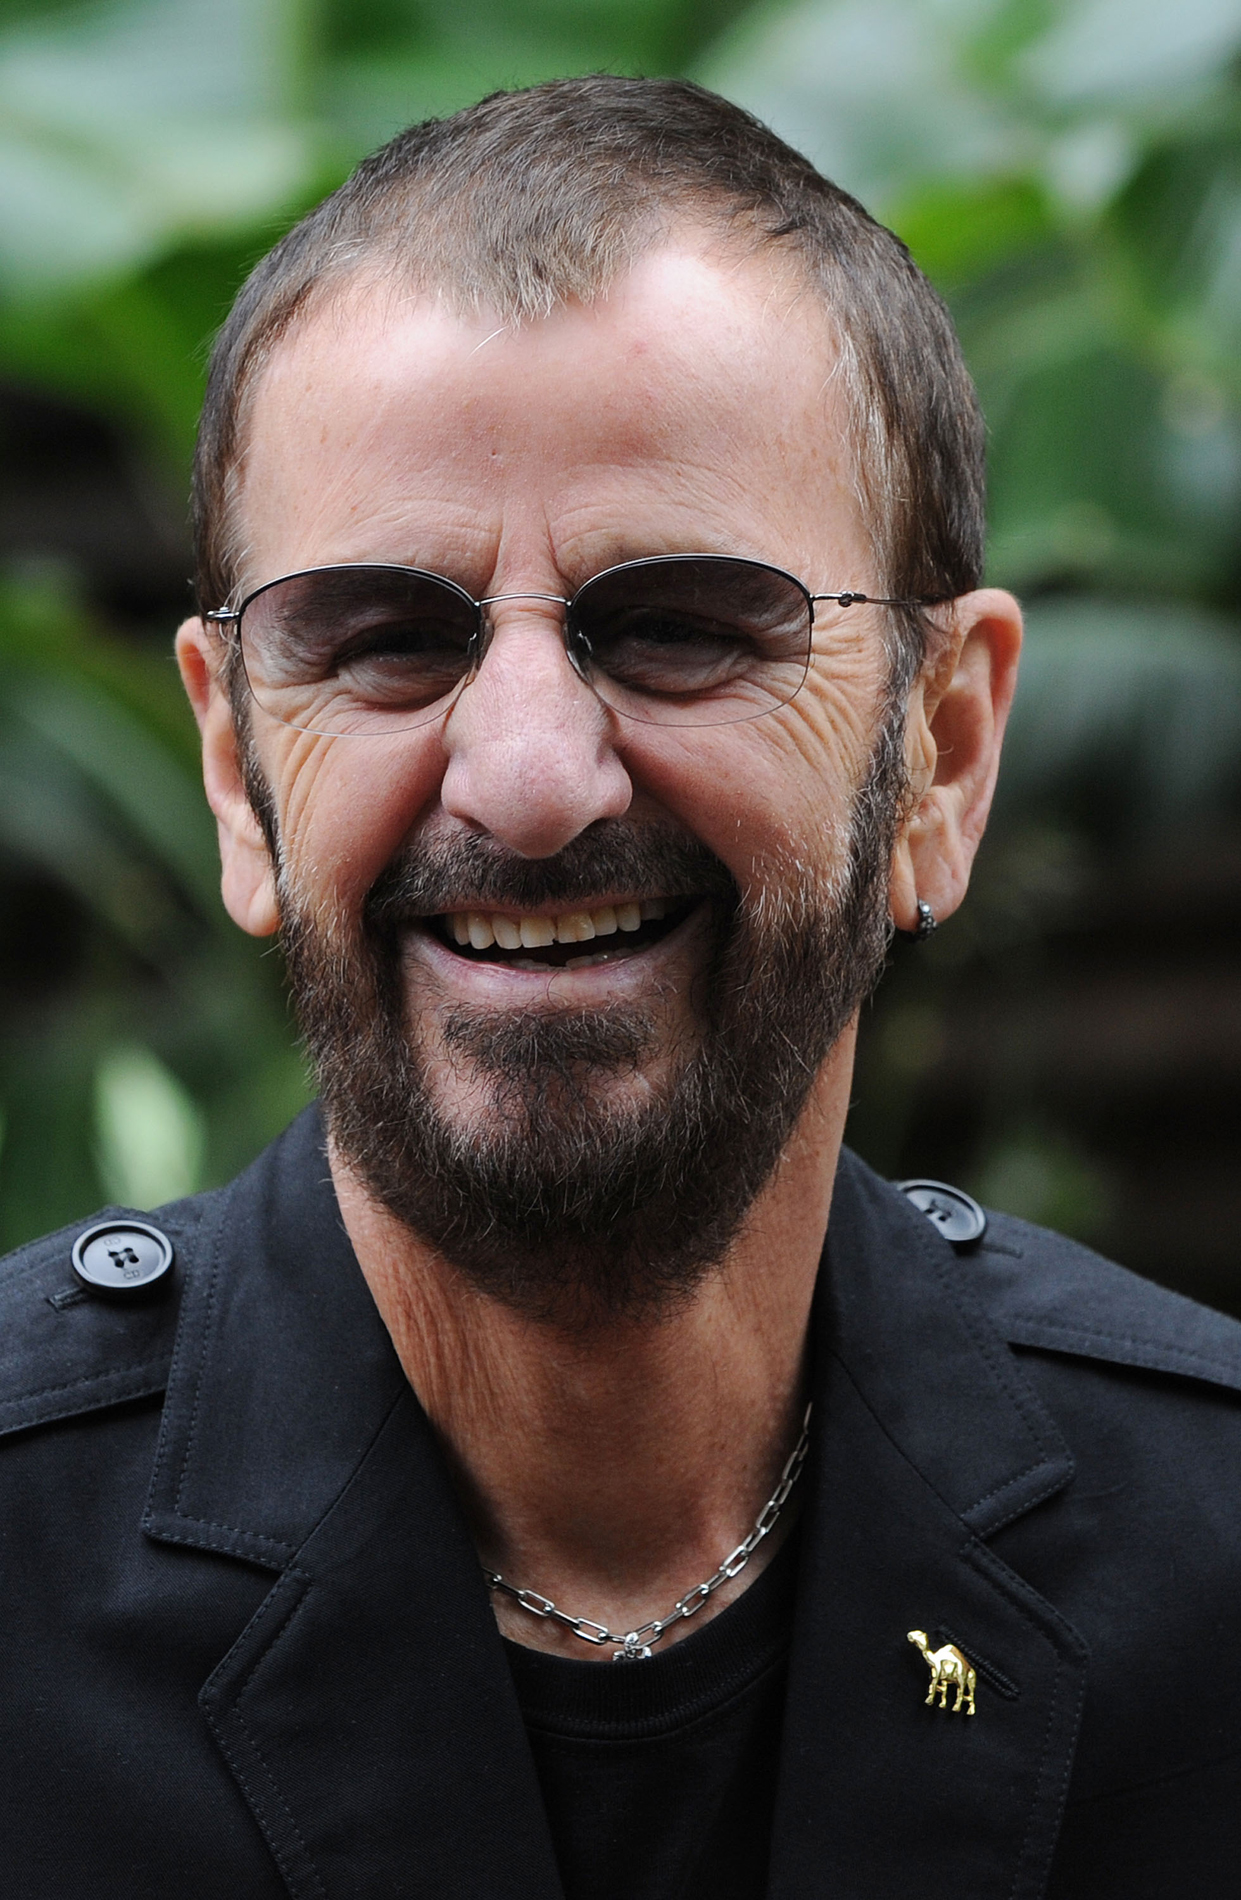 ringo starr disney wiki fandom powered by wikia. Black Bedroom Furniture Sets. Home Design Ideas